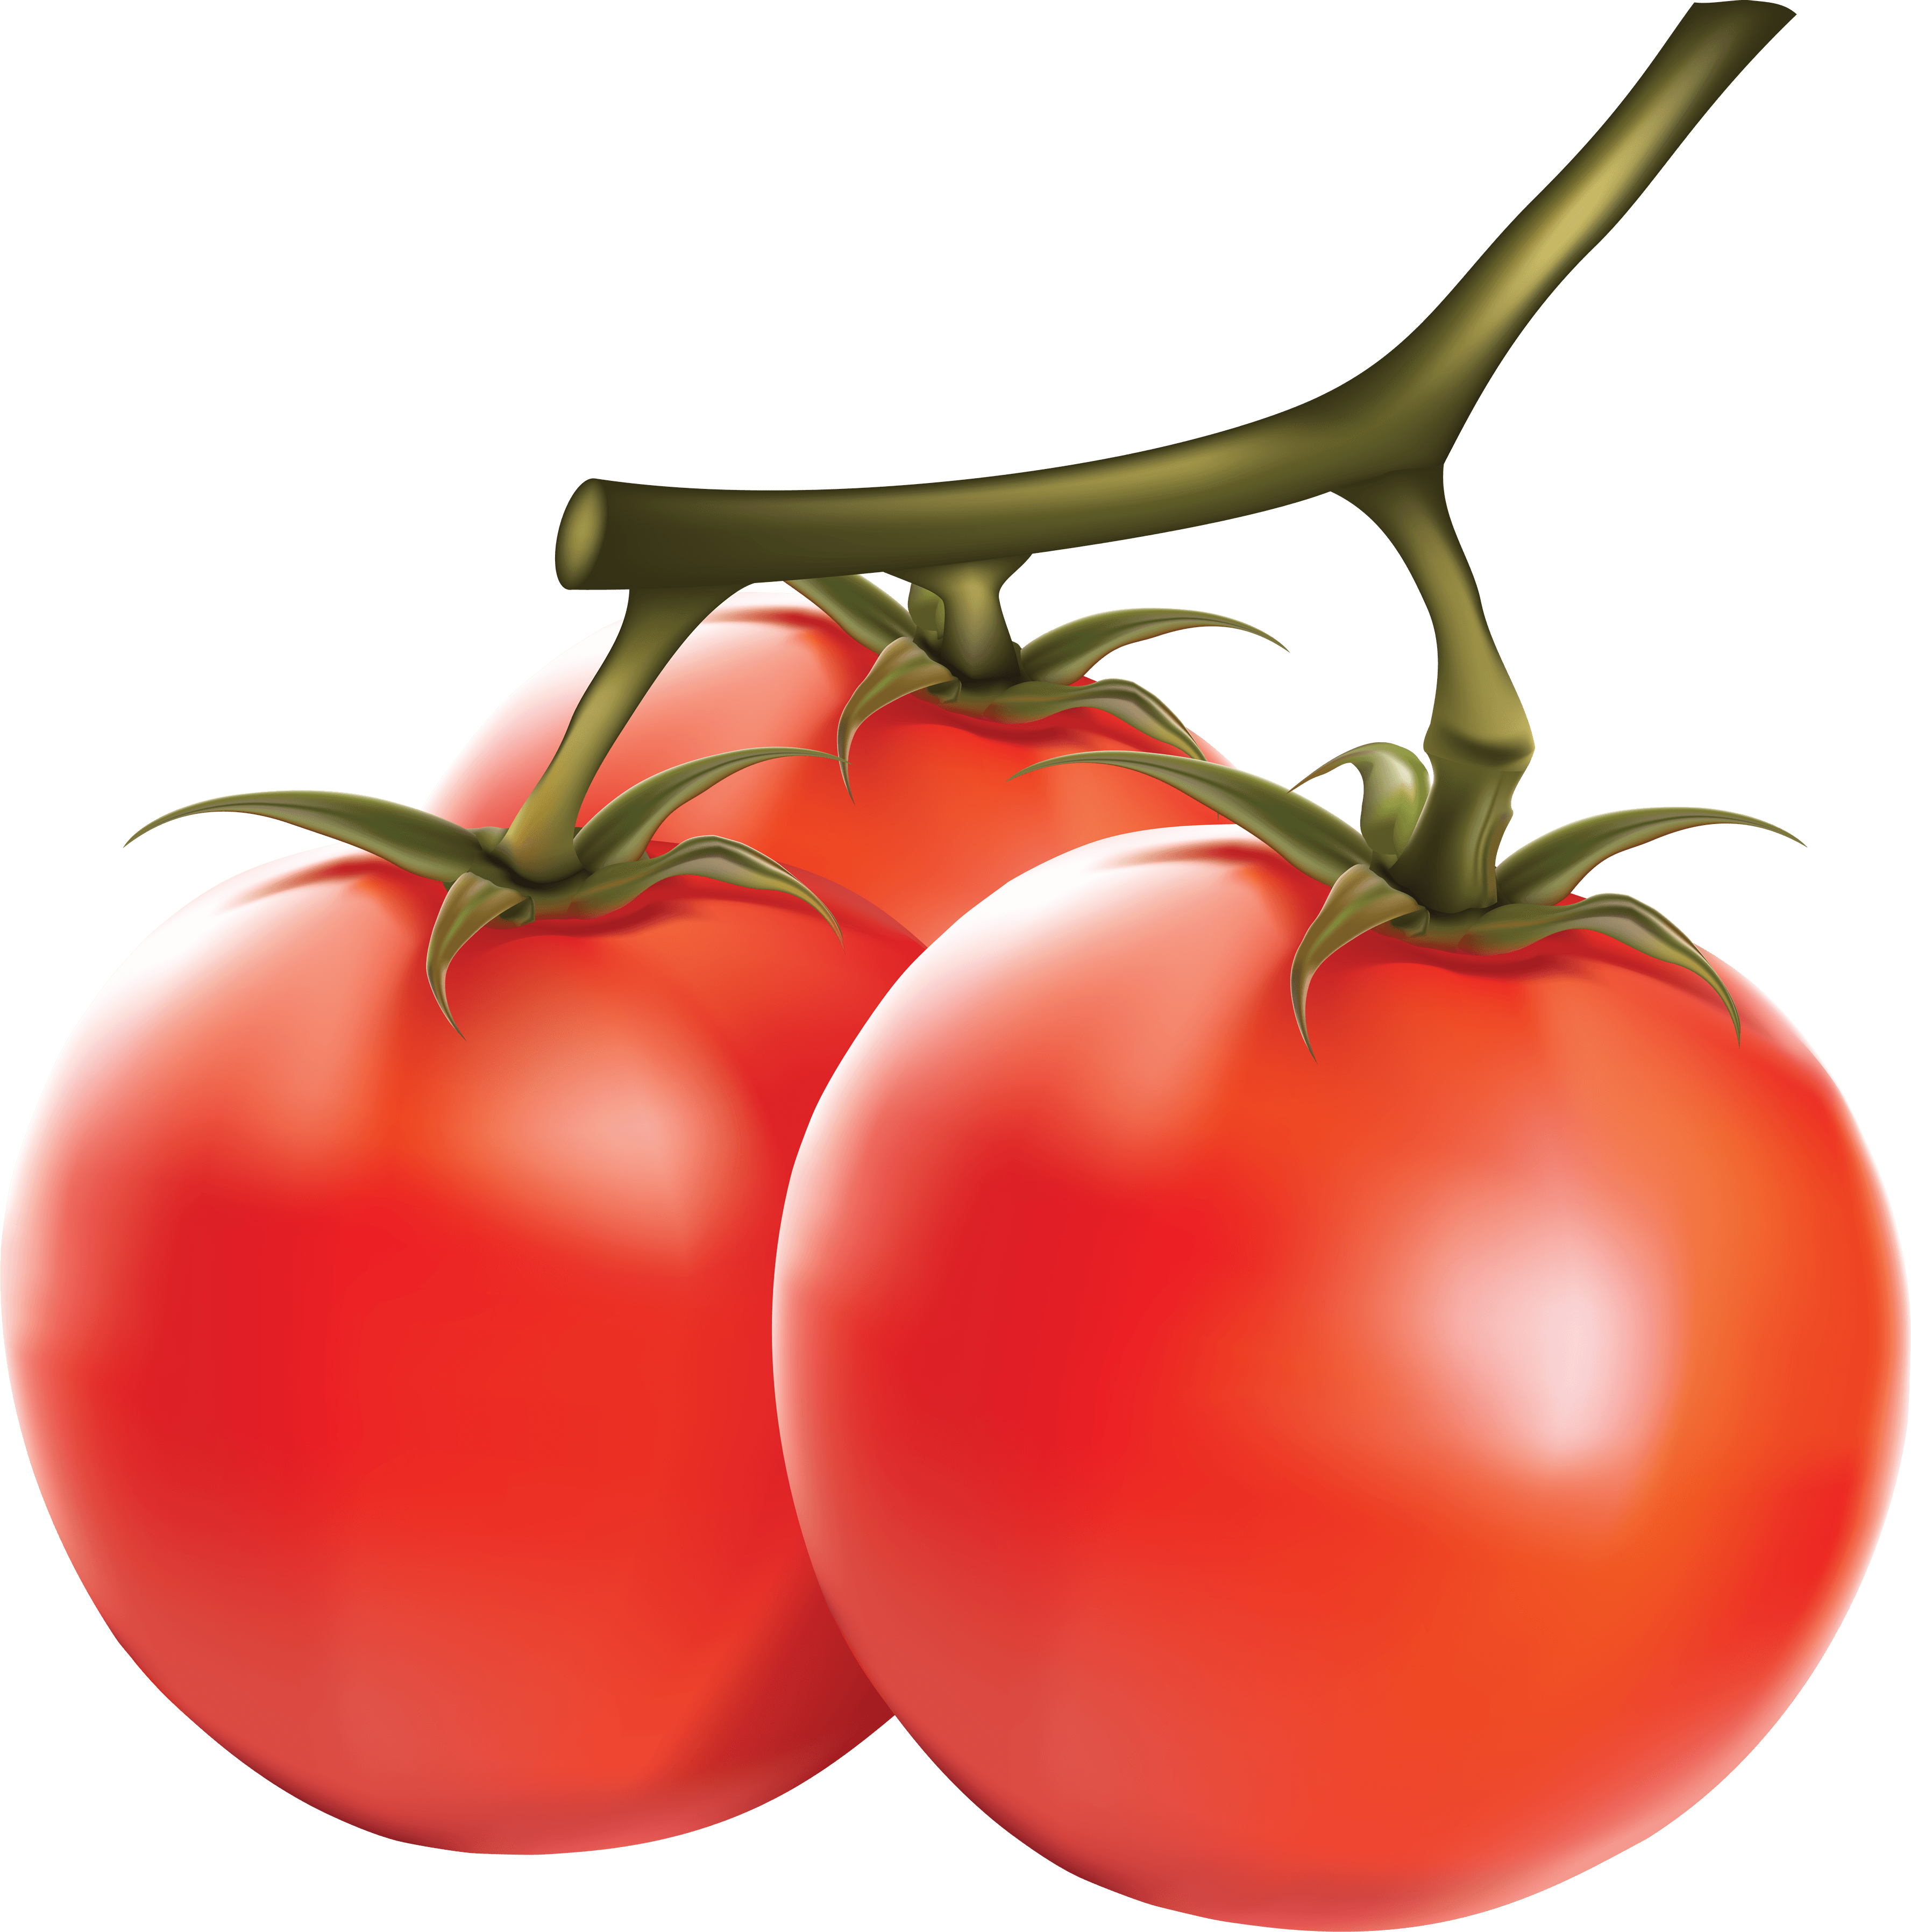 PNG Tomato - 57146